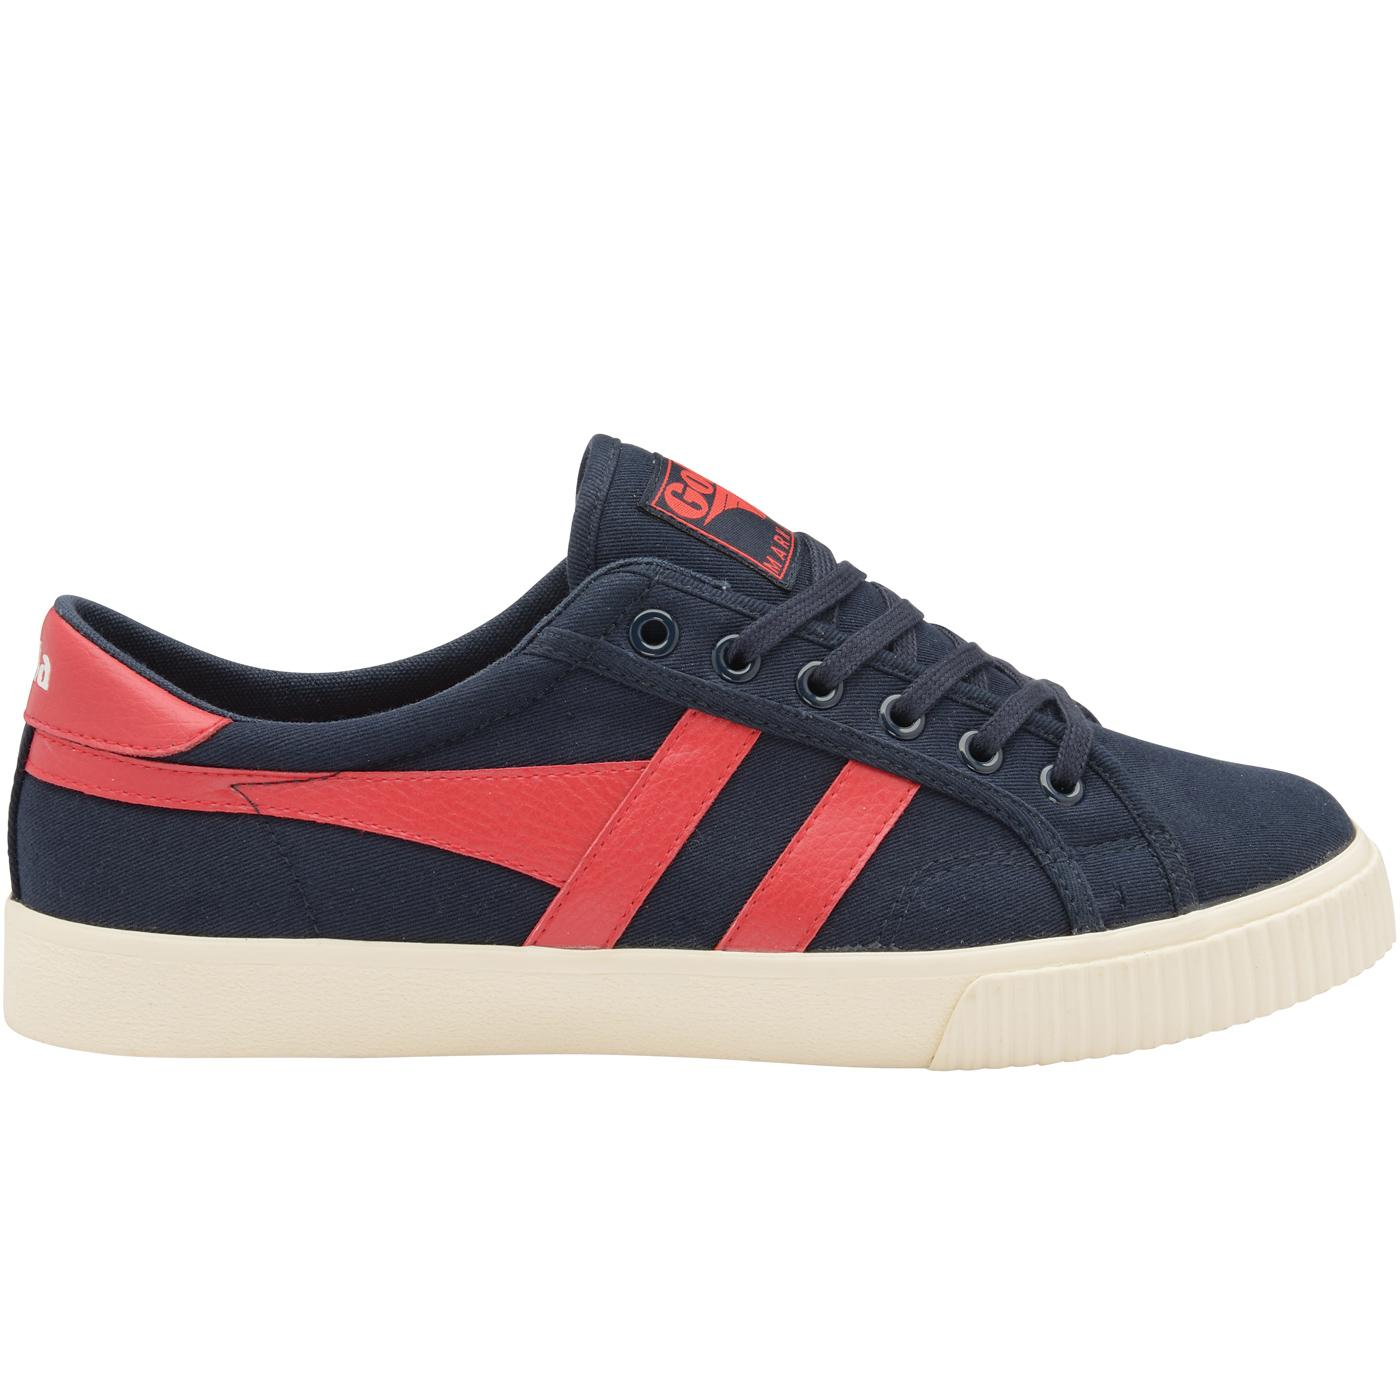 GOLA Mark Cox Retro 70s Canvas Tennis Trainers N/R